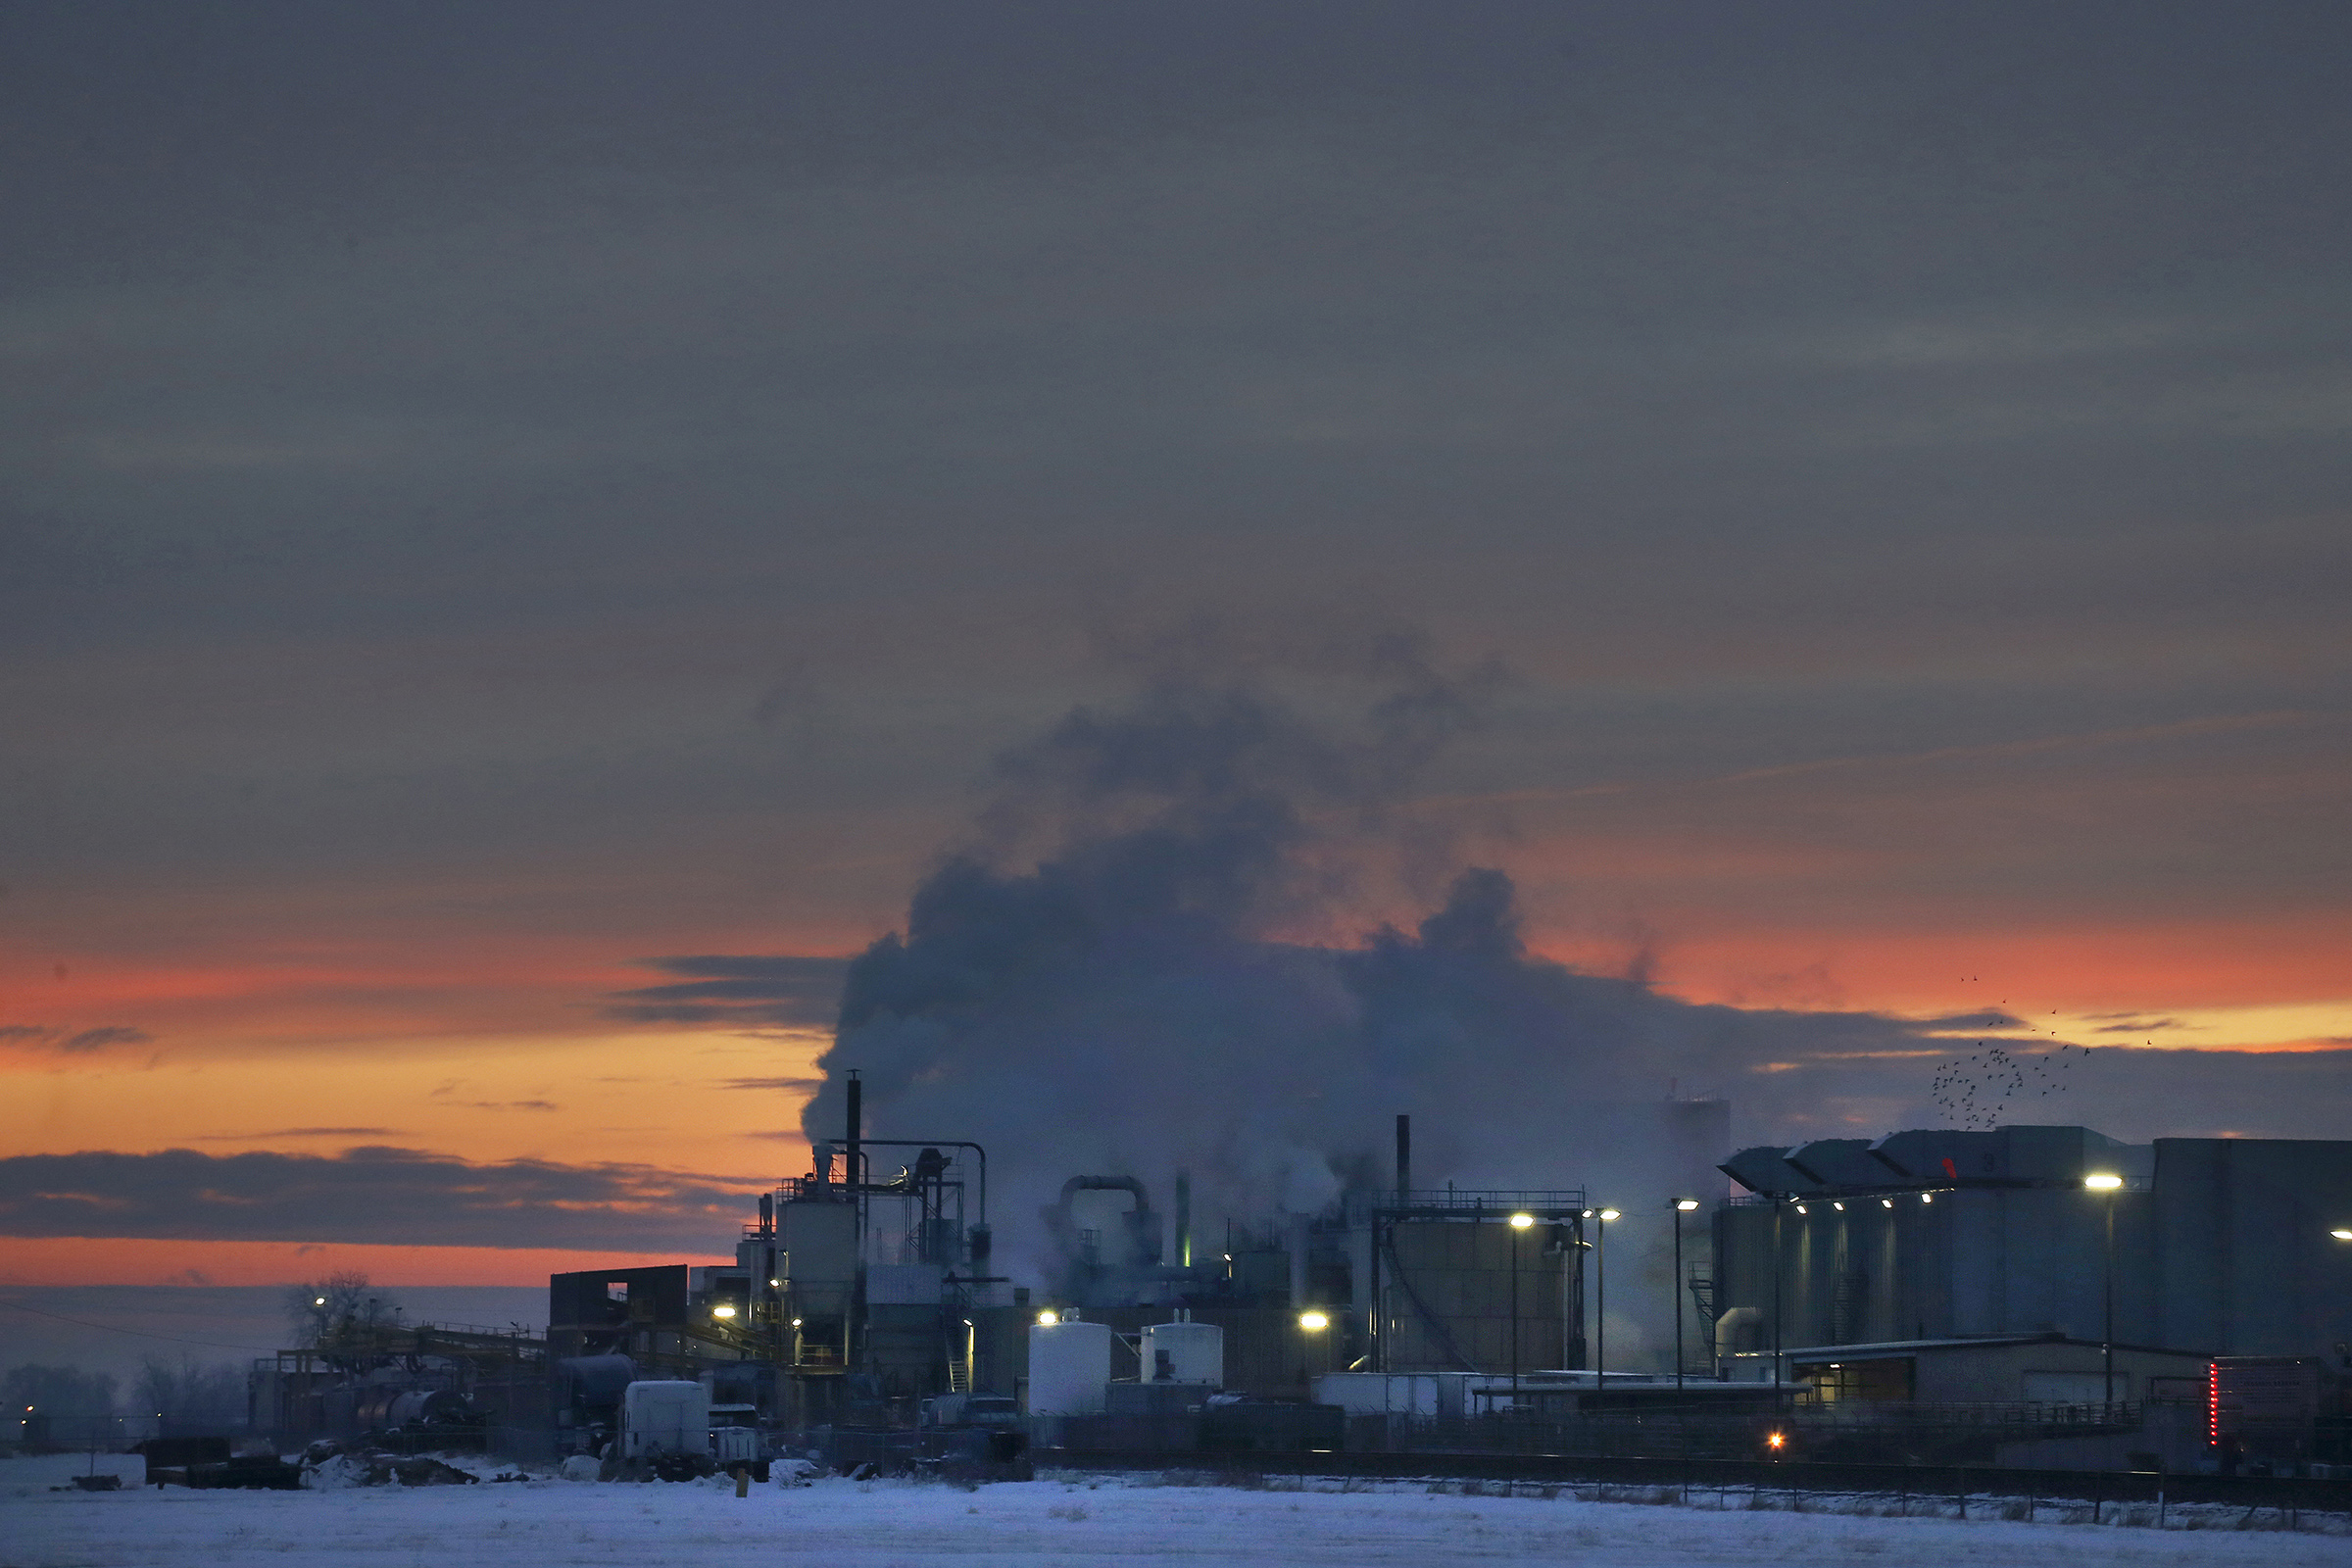 <p>In this January 2016 photo, dawn approaches over the meat processing plant owned and run by Cargill Meat Solutions, in Fort Morgan, a small town on the eastern plains of Colorado. Fort Morgan has about 1,200 Somali immigrants, themselves mostly refugees, many of whom work at Cargill.</p>